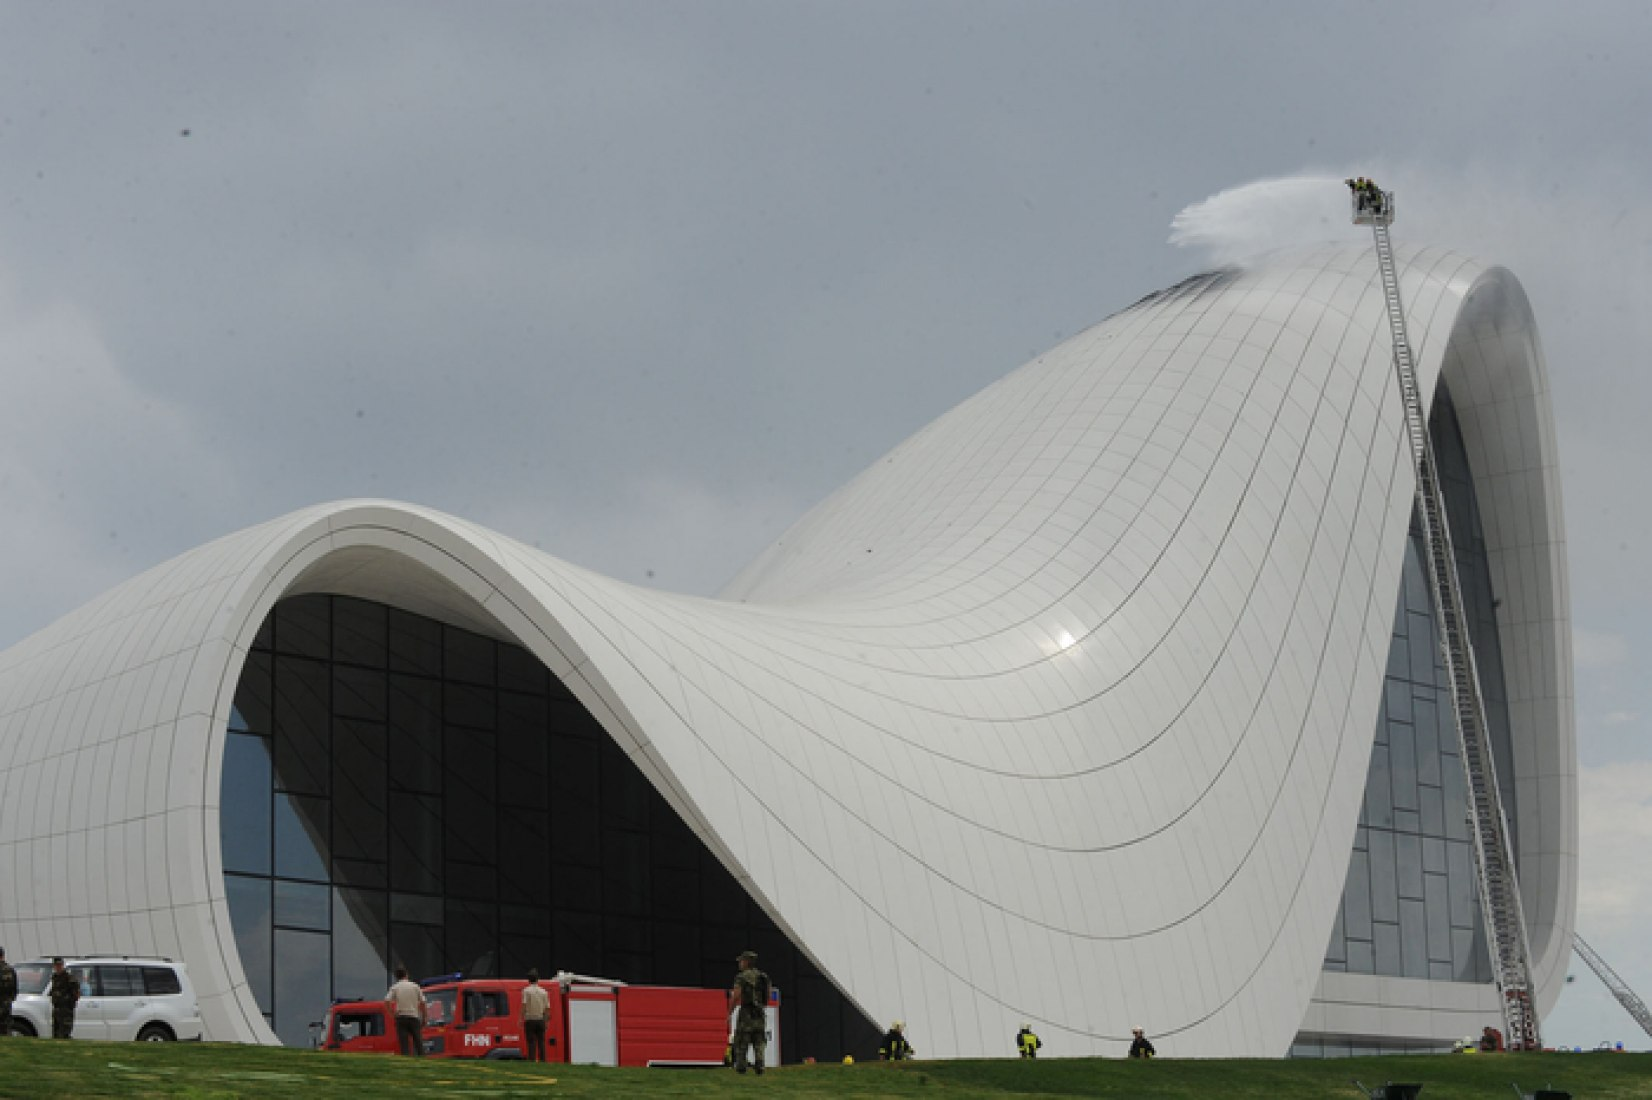 Heydar Aliyev center. Photograph by AzerTAc.